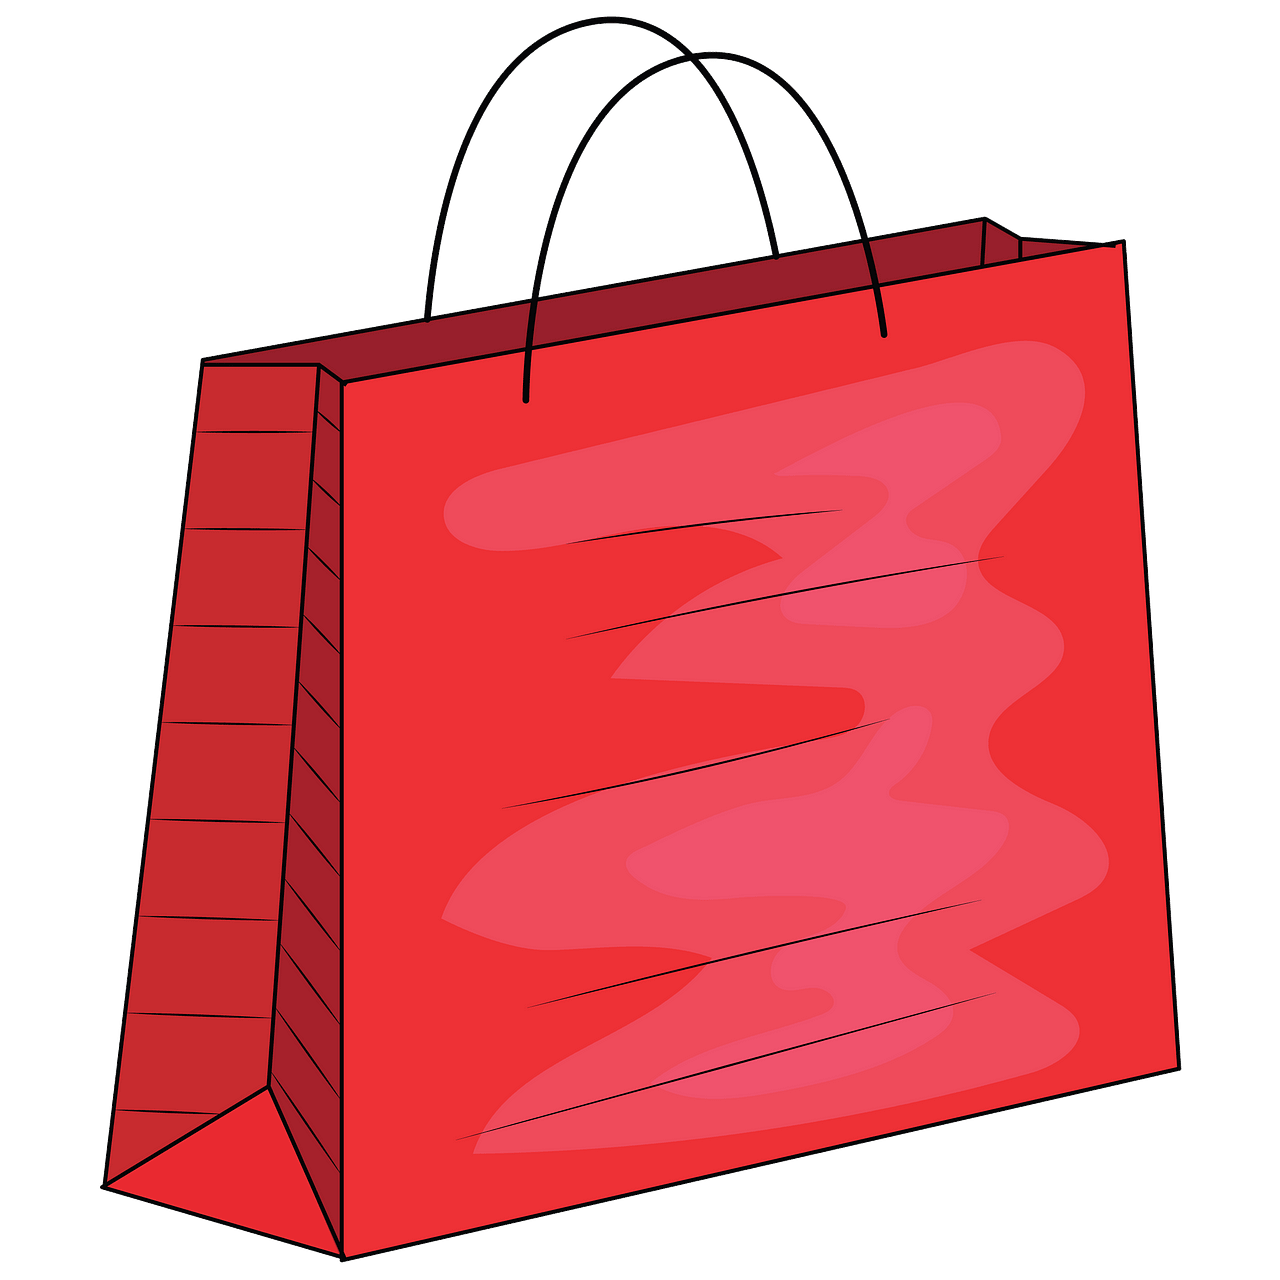 Red shopping bag clipart. Free download..